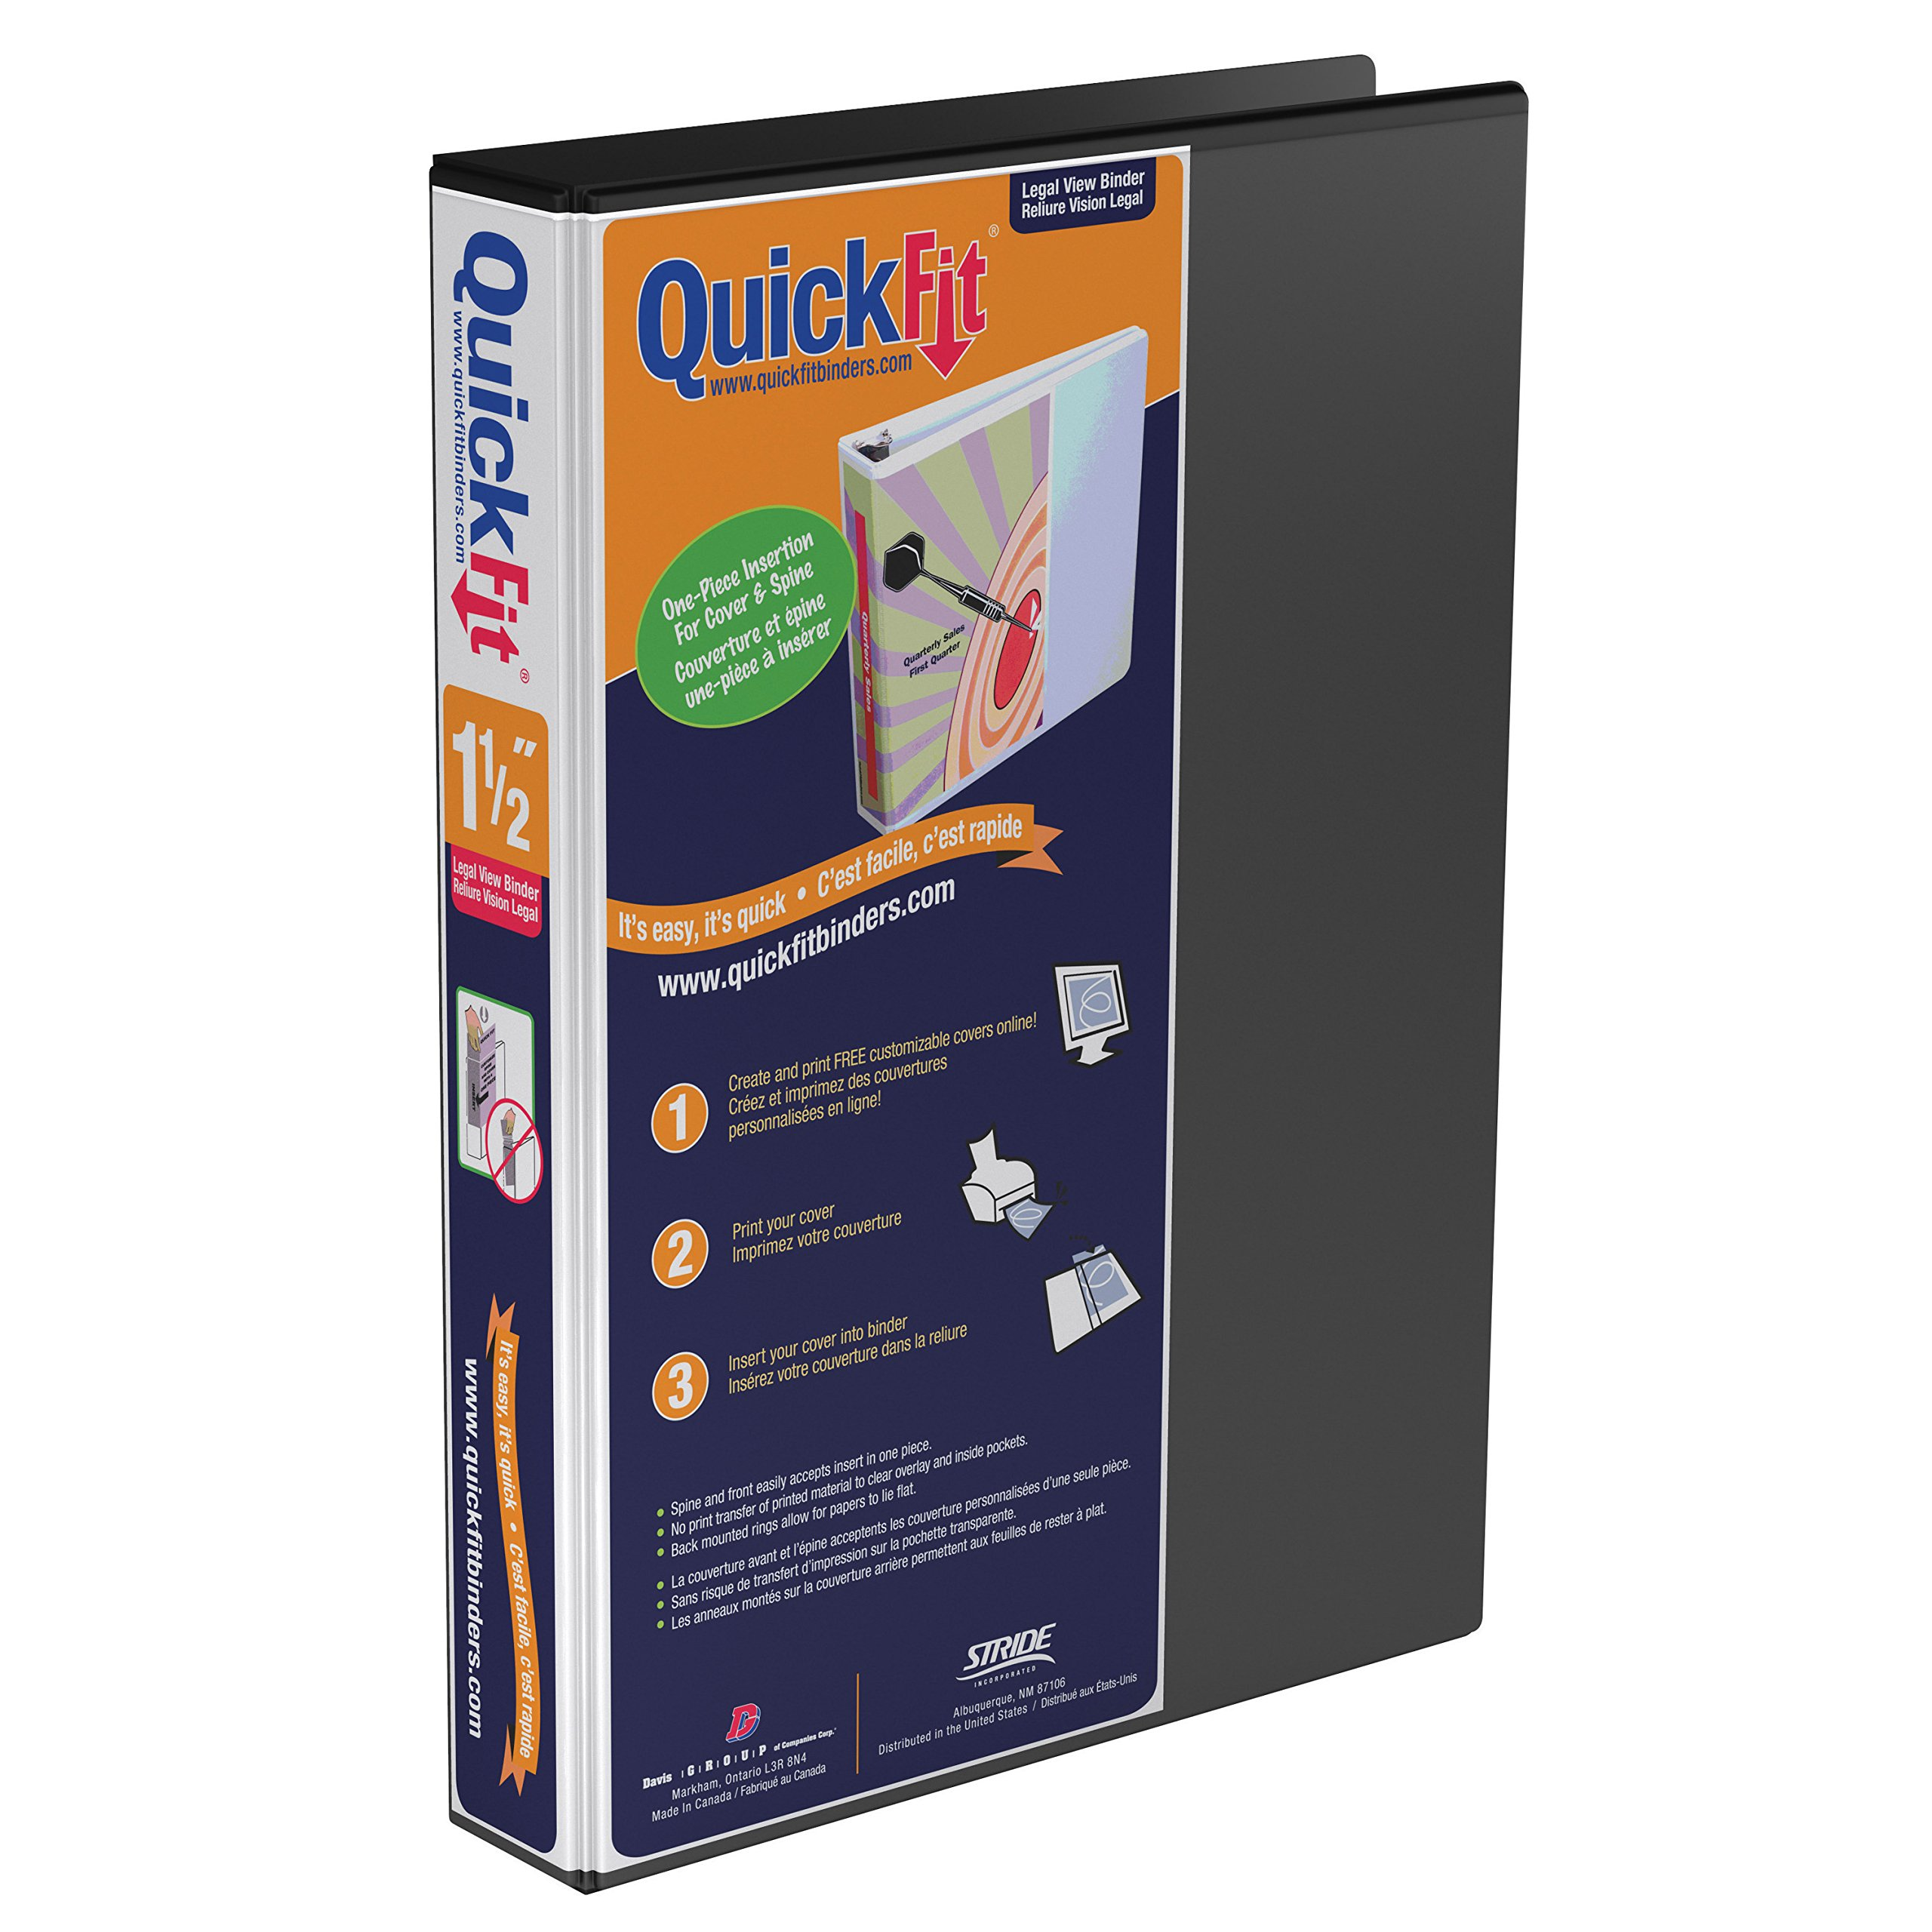 QuickFit Heavy Duty 14 x 8.5 Inch Portrait Legal View Binder, 1.5 Inch, Angle D Ring, Black (95021P)